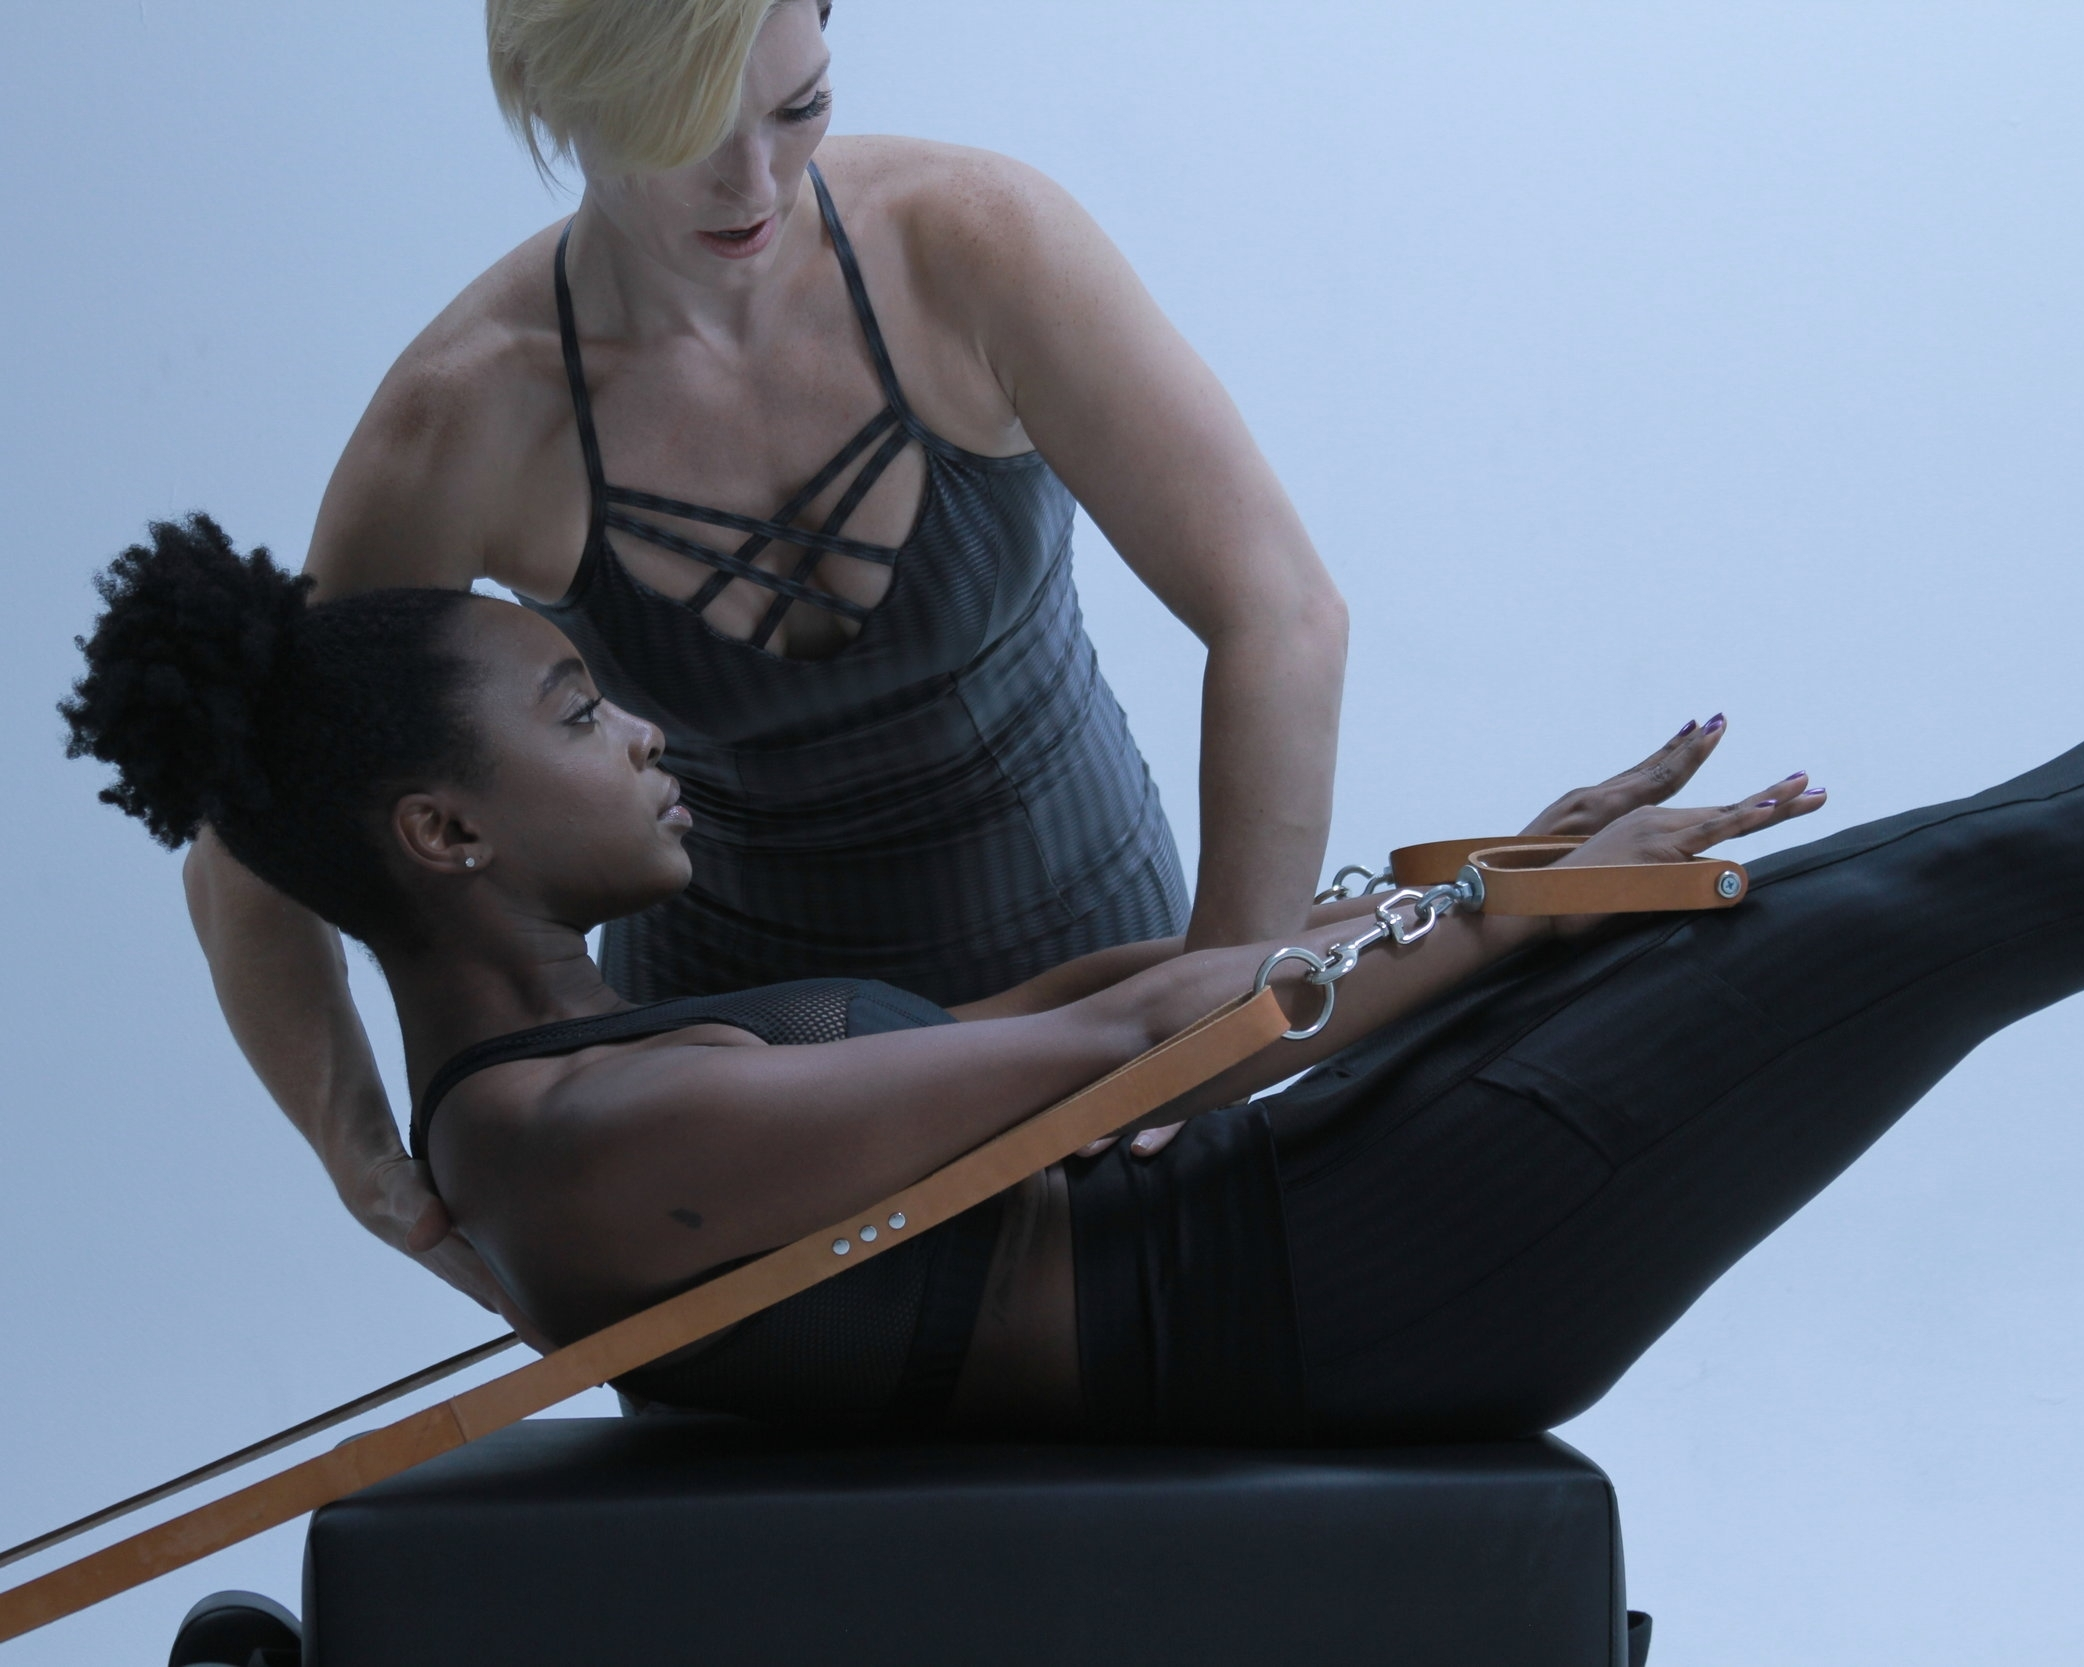 Purchase Pilates Packages 15% OFFCODE: nexafirst - *One time offer